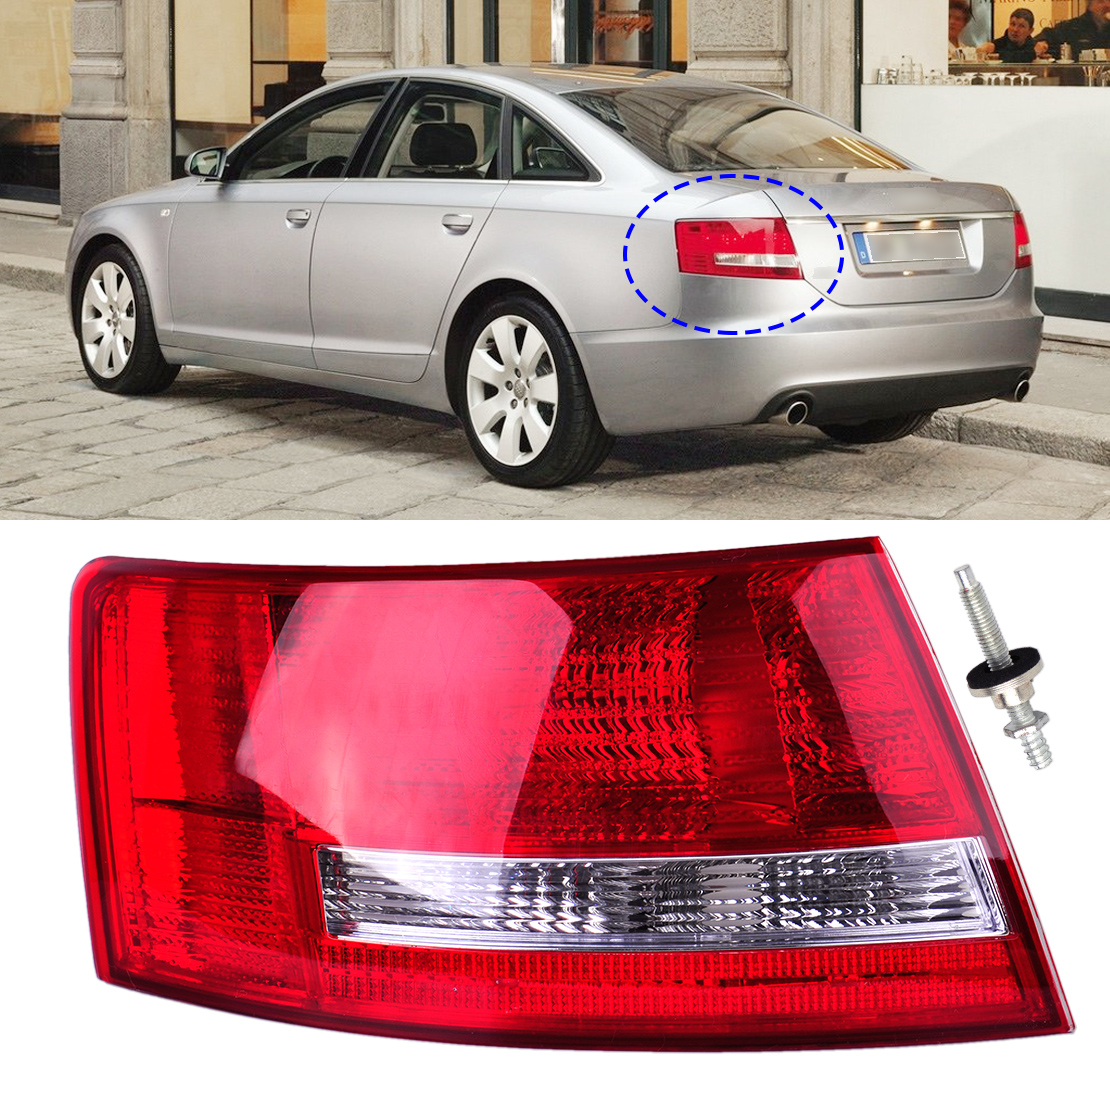 Citall left tail light assembly lamp housing without bulb for audi a6 quattro sedan 2005 2006 2007 2008 4f5945095l 4f5945095d